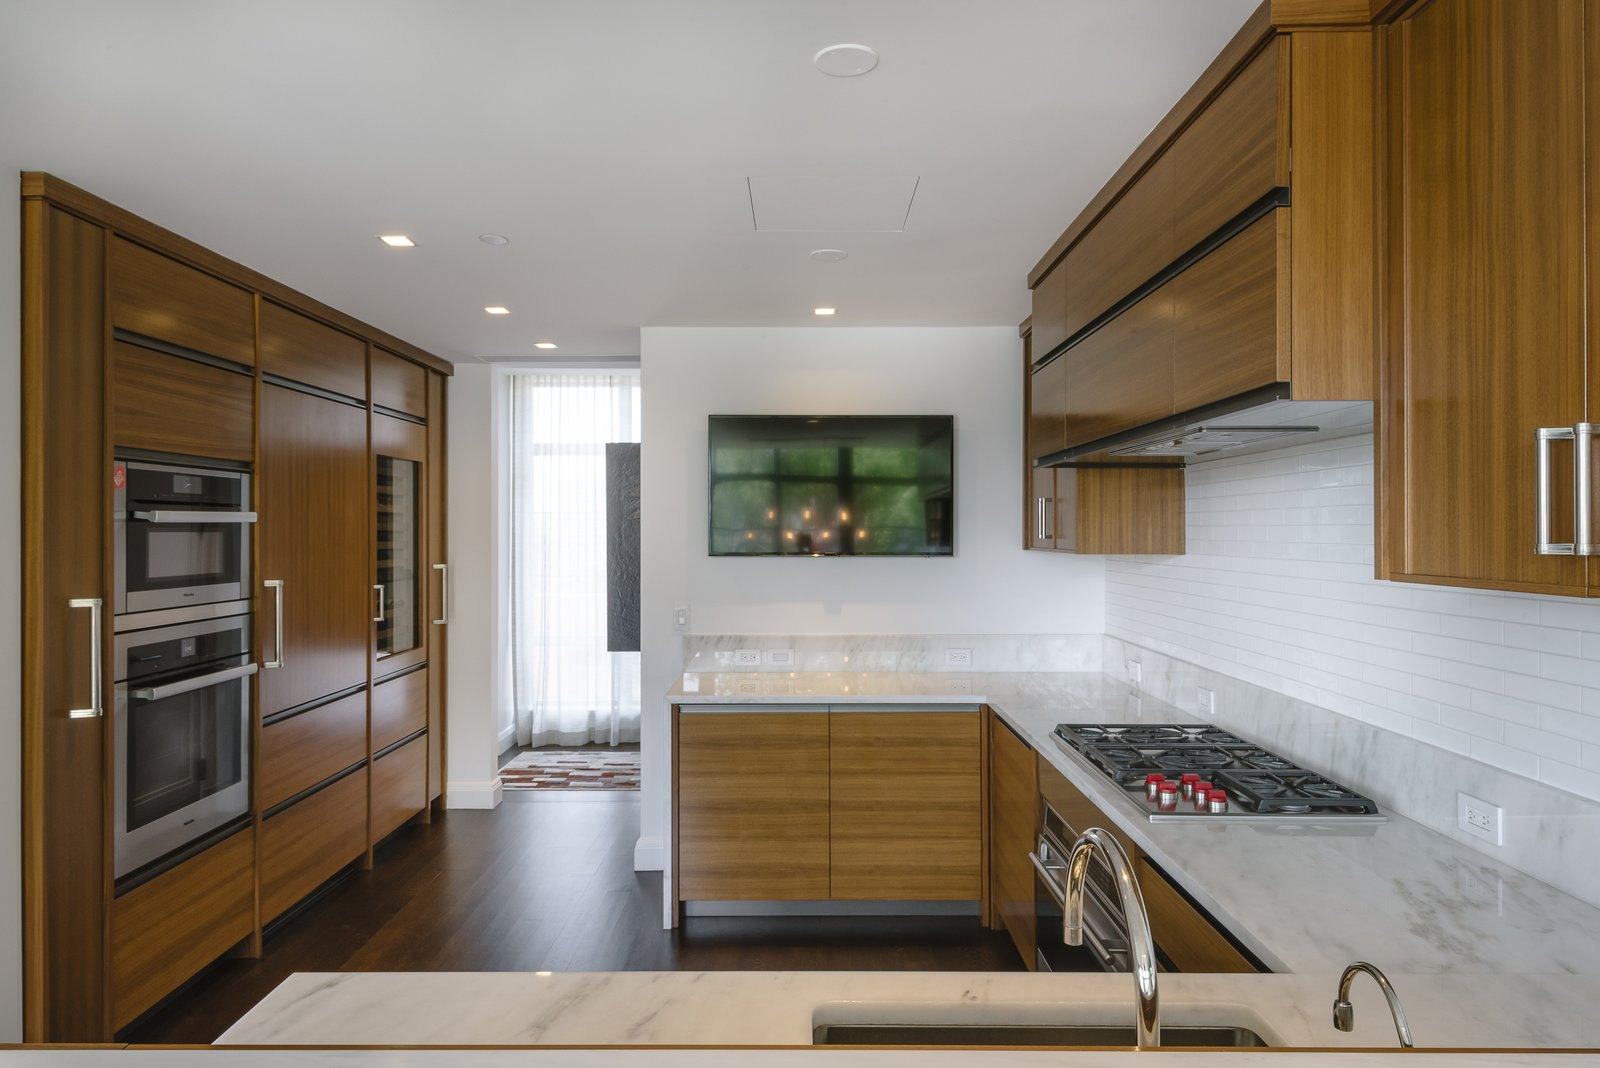 Kitchen, Marble, Range, Wall Oven, Ceiling, Wood, Refrigerator, Dark Hardwood, Drop In, Range Hood, and Subway Tile The customized open kitchen features top-of-the-line appliances.  Best Kitchen Ceiling Dark Hardwood Photos from Jon Bon Jovi Sells His West Village Duplex For $16M